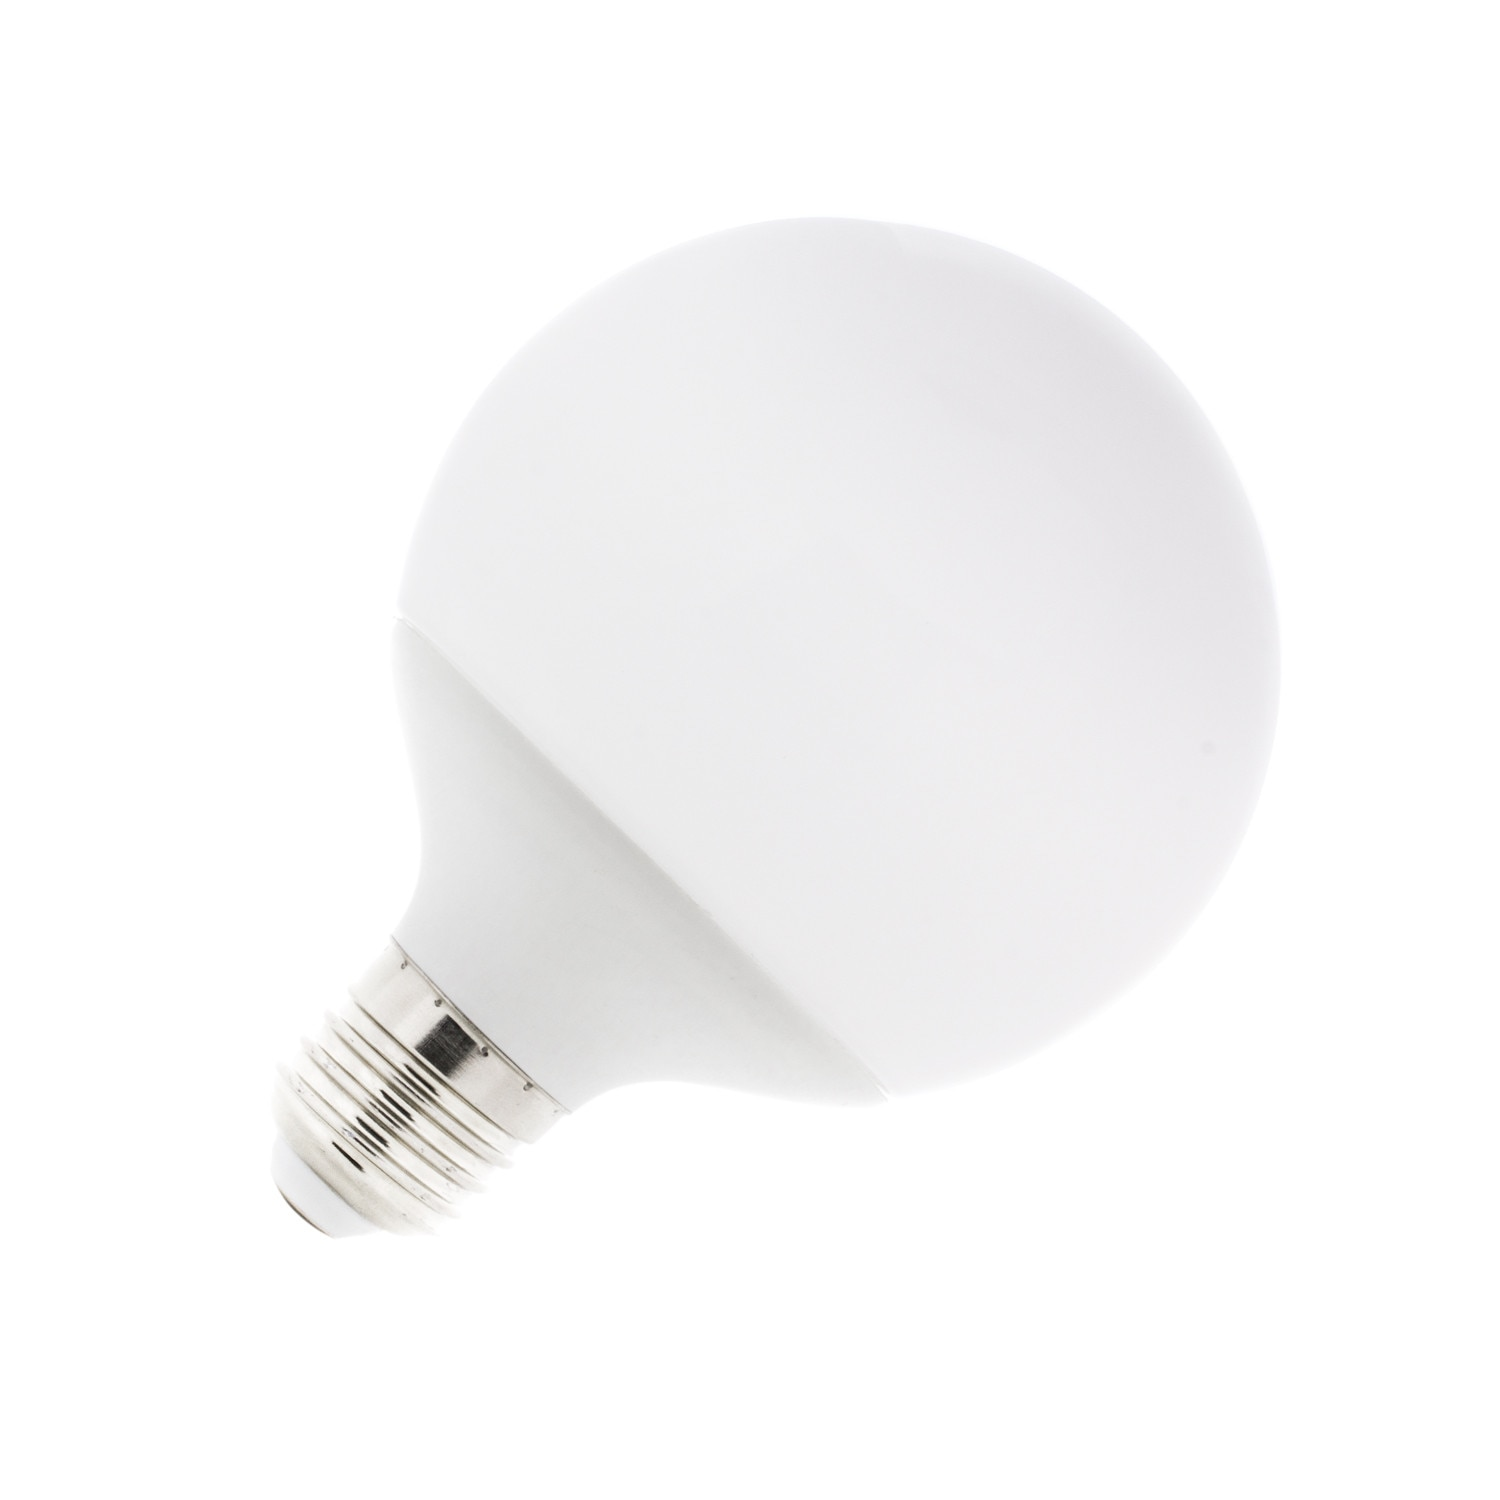 Valor Lamparas Led Bombilla Led E27 G95 15w Efectoled